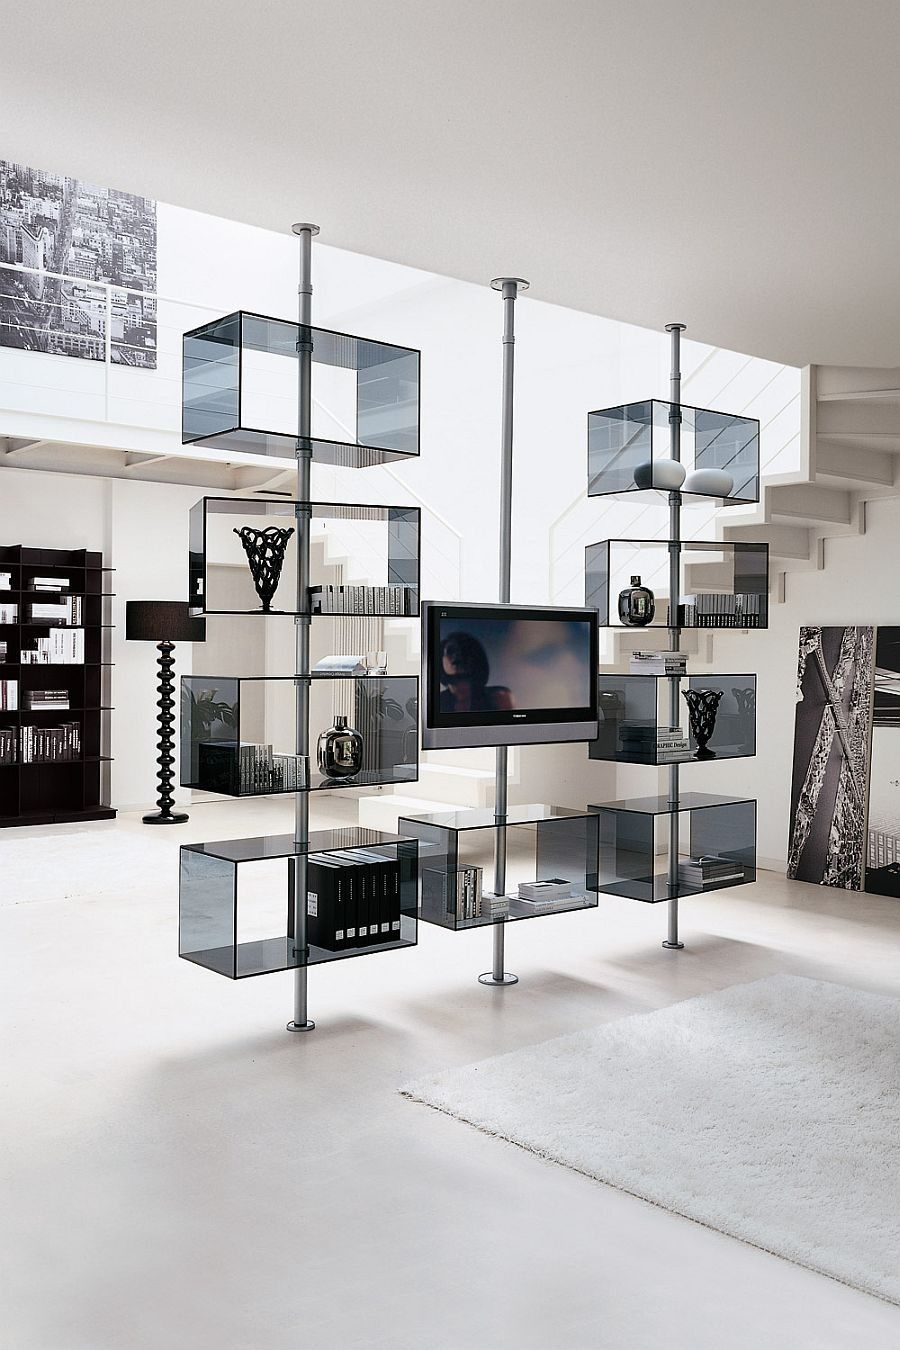 Design Tv Rack Cool Tv Rack With Tv Rack With Design Tv Rack 44 Modern Tv Stand Designs For Ultimate Home Entertainment